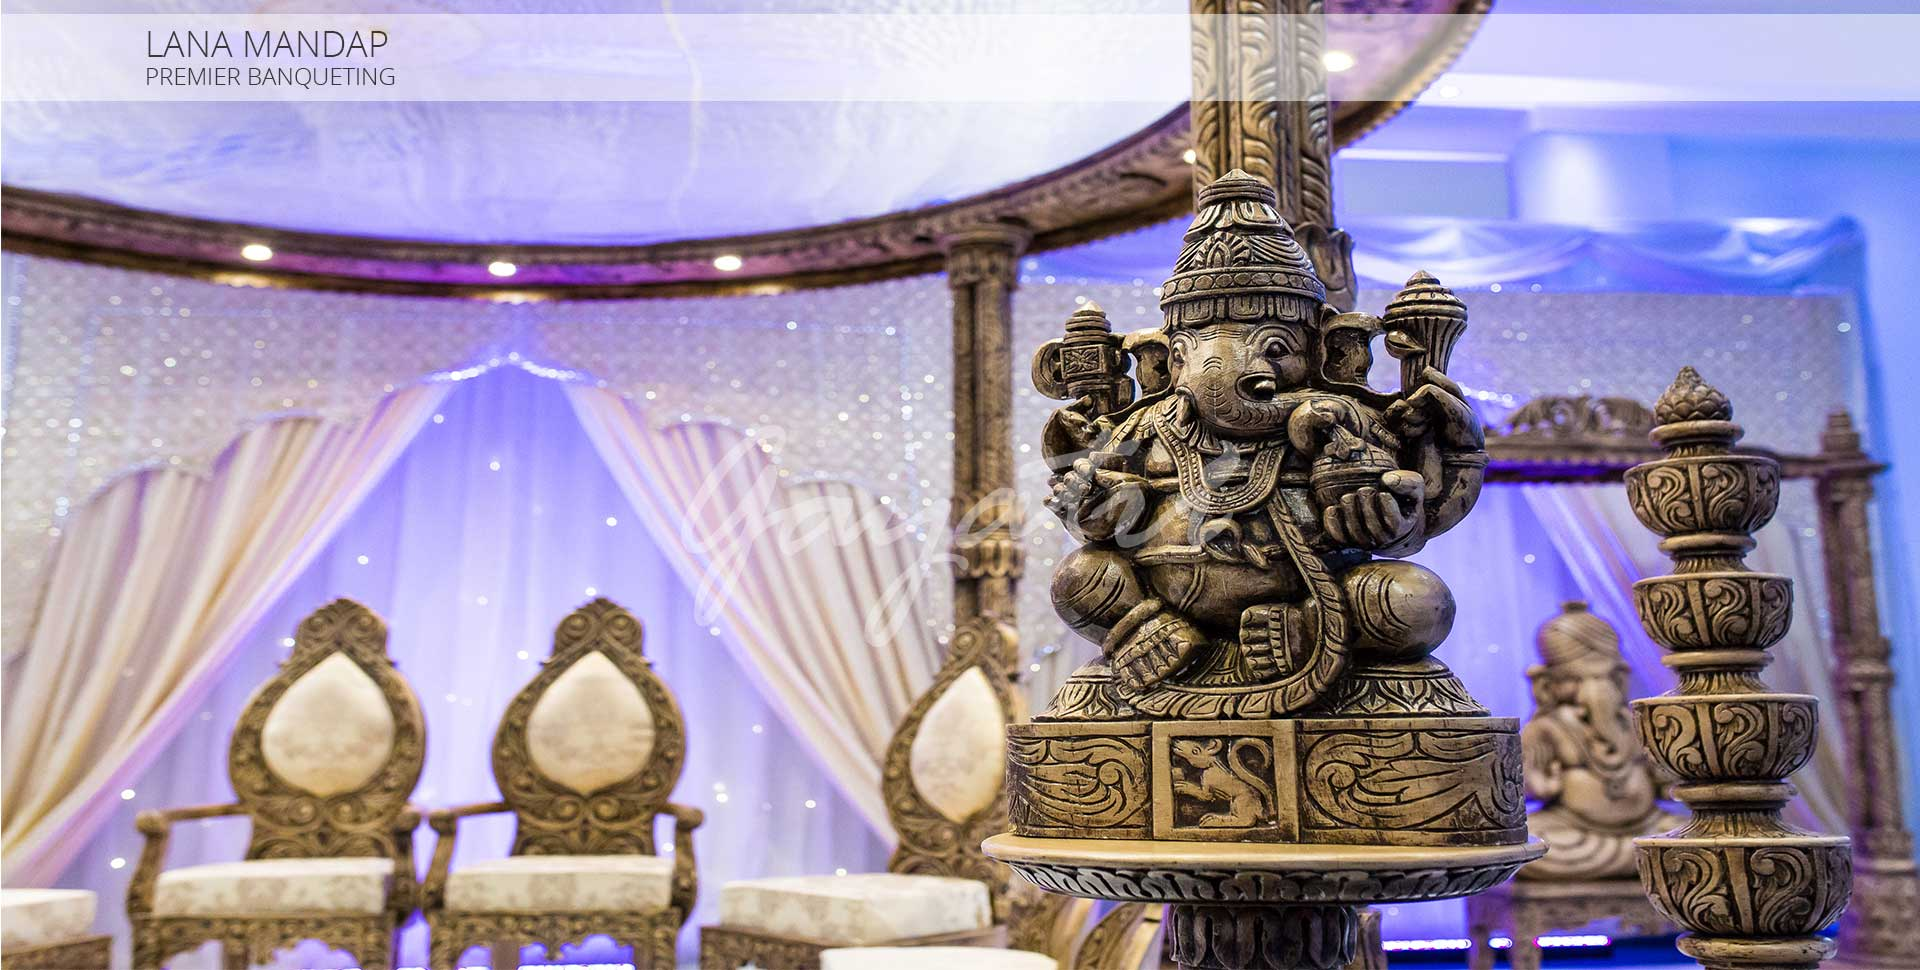 Lana Indian Wedding Mandap